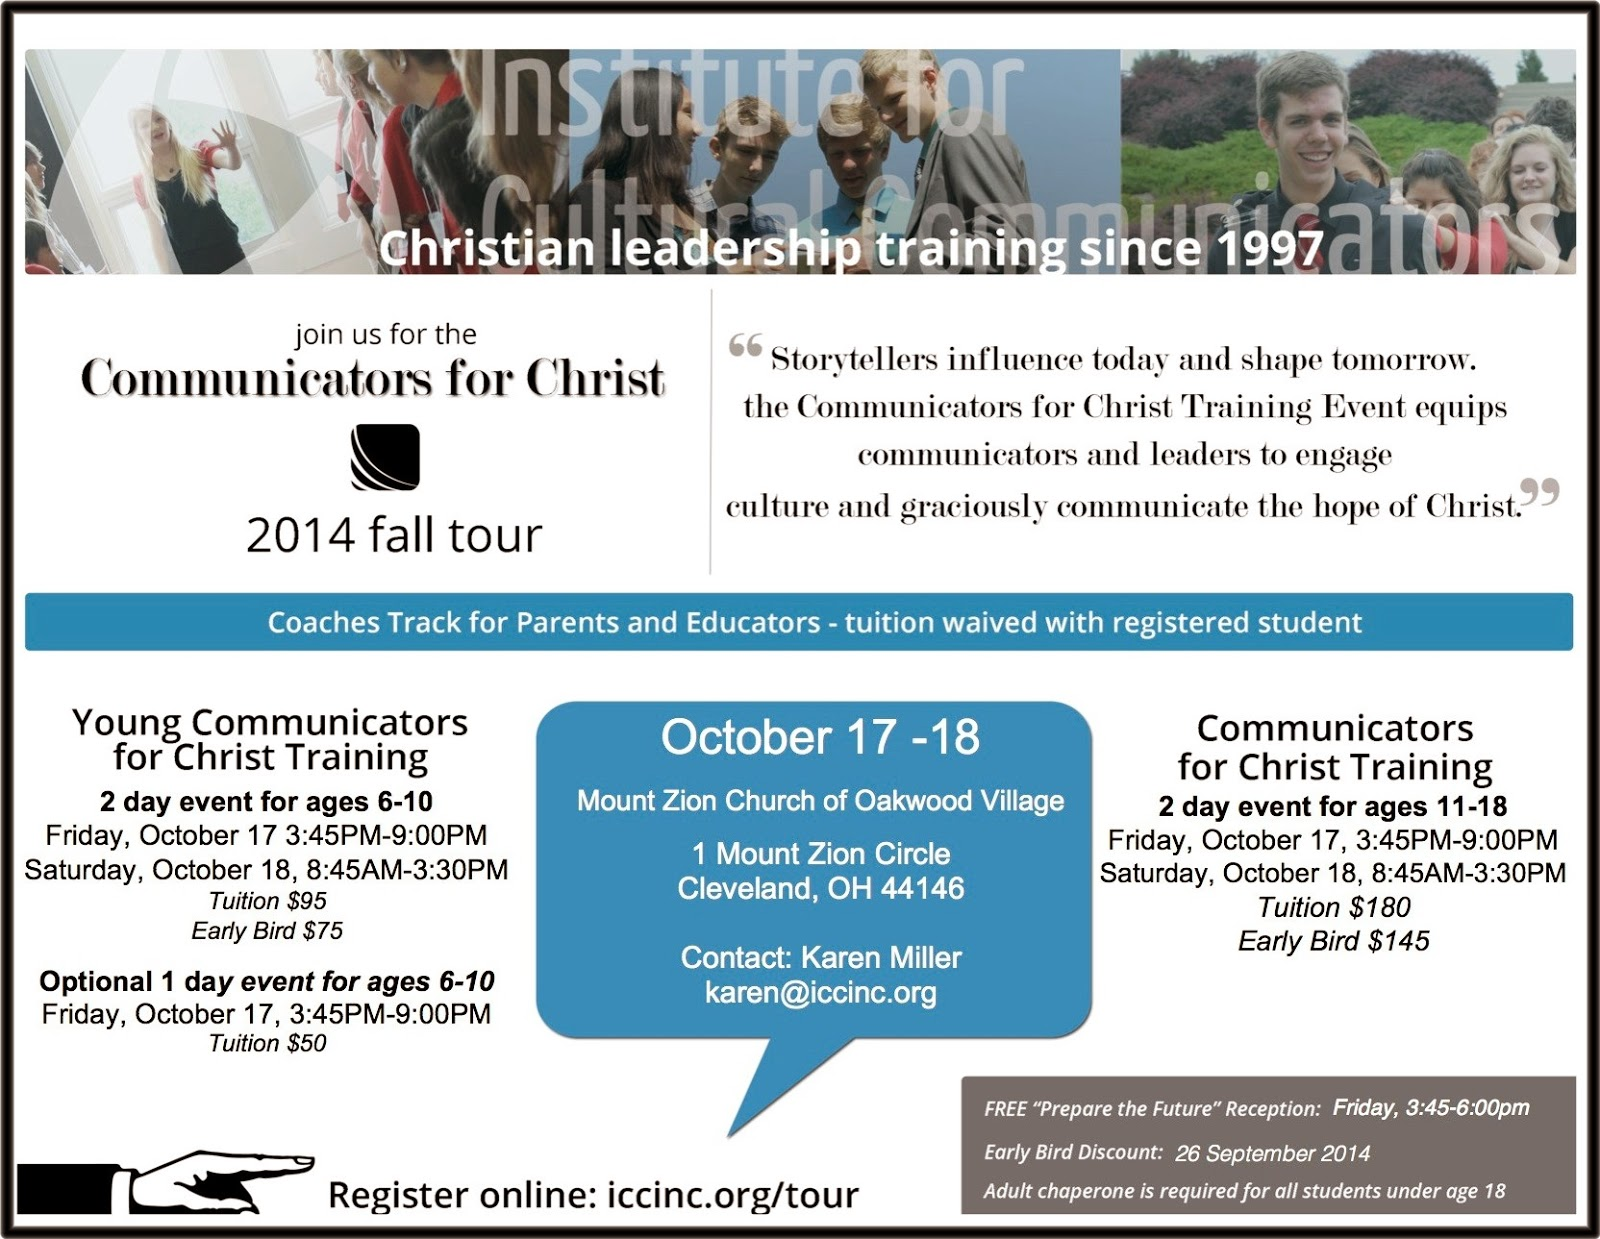 Communicators for Christ Conference 2014